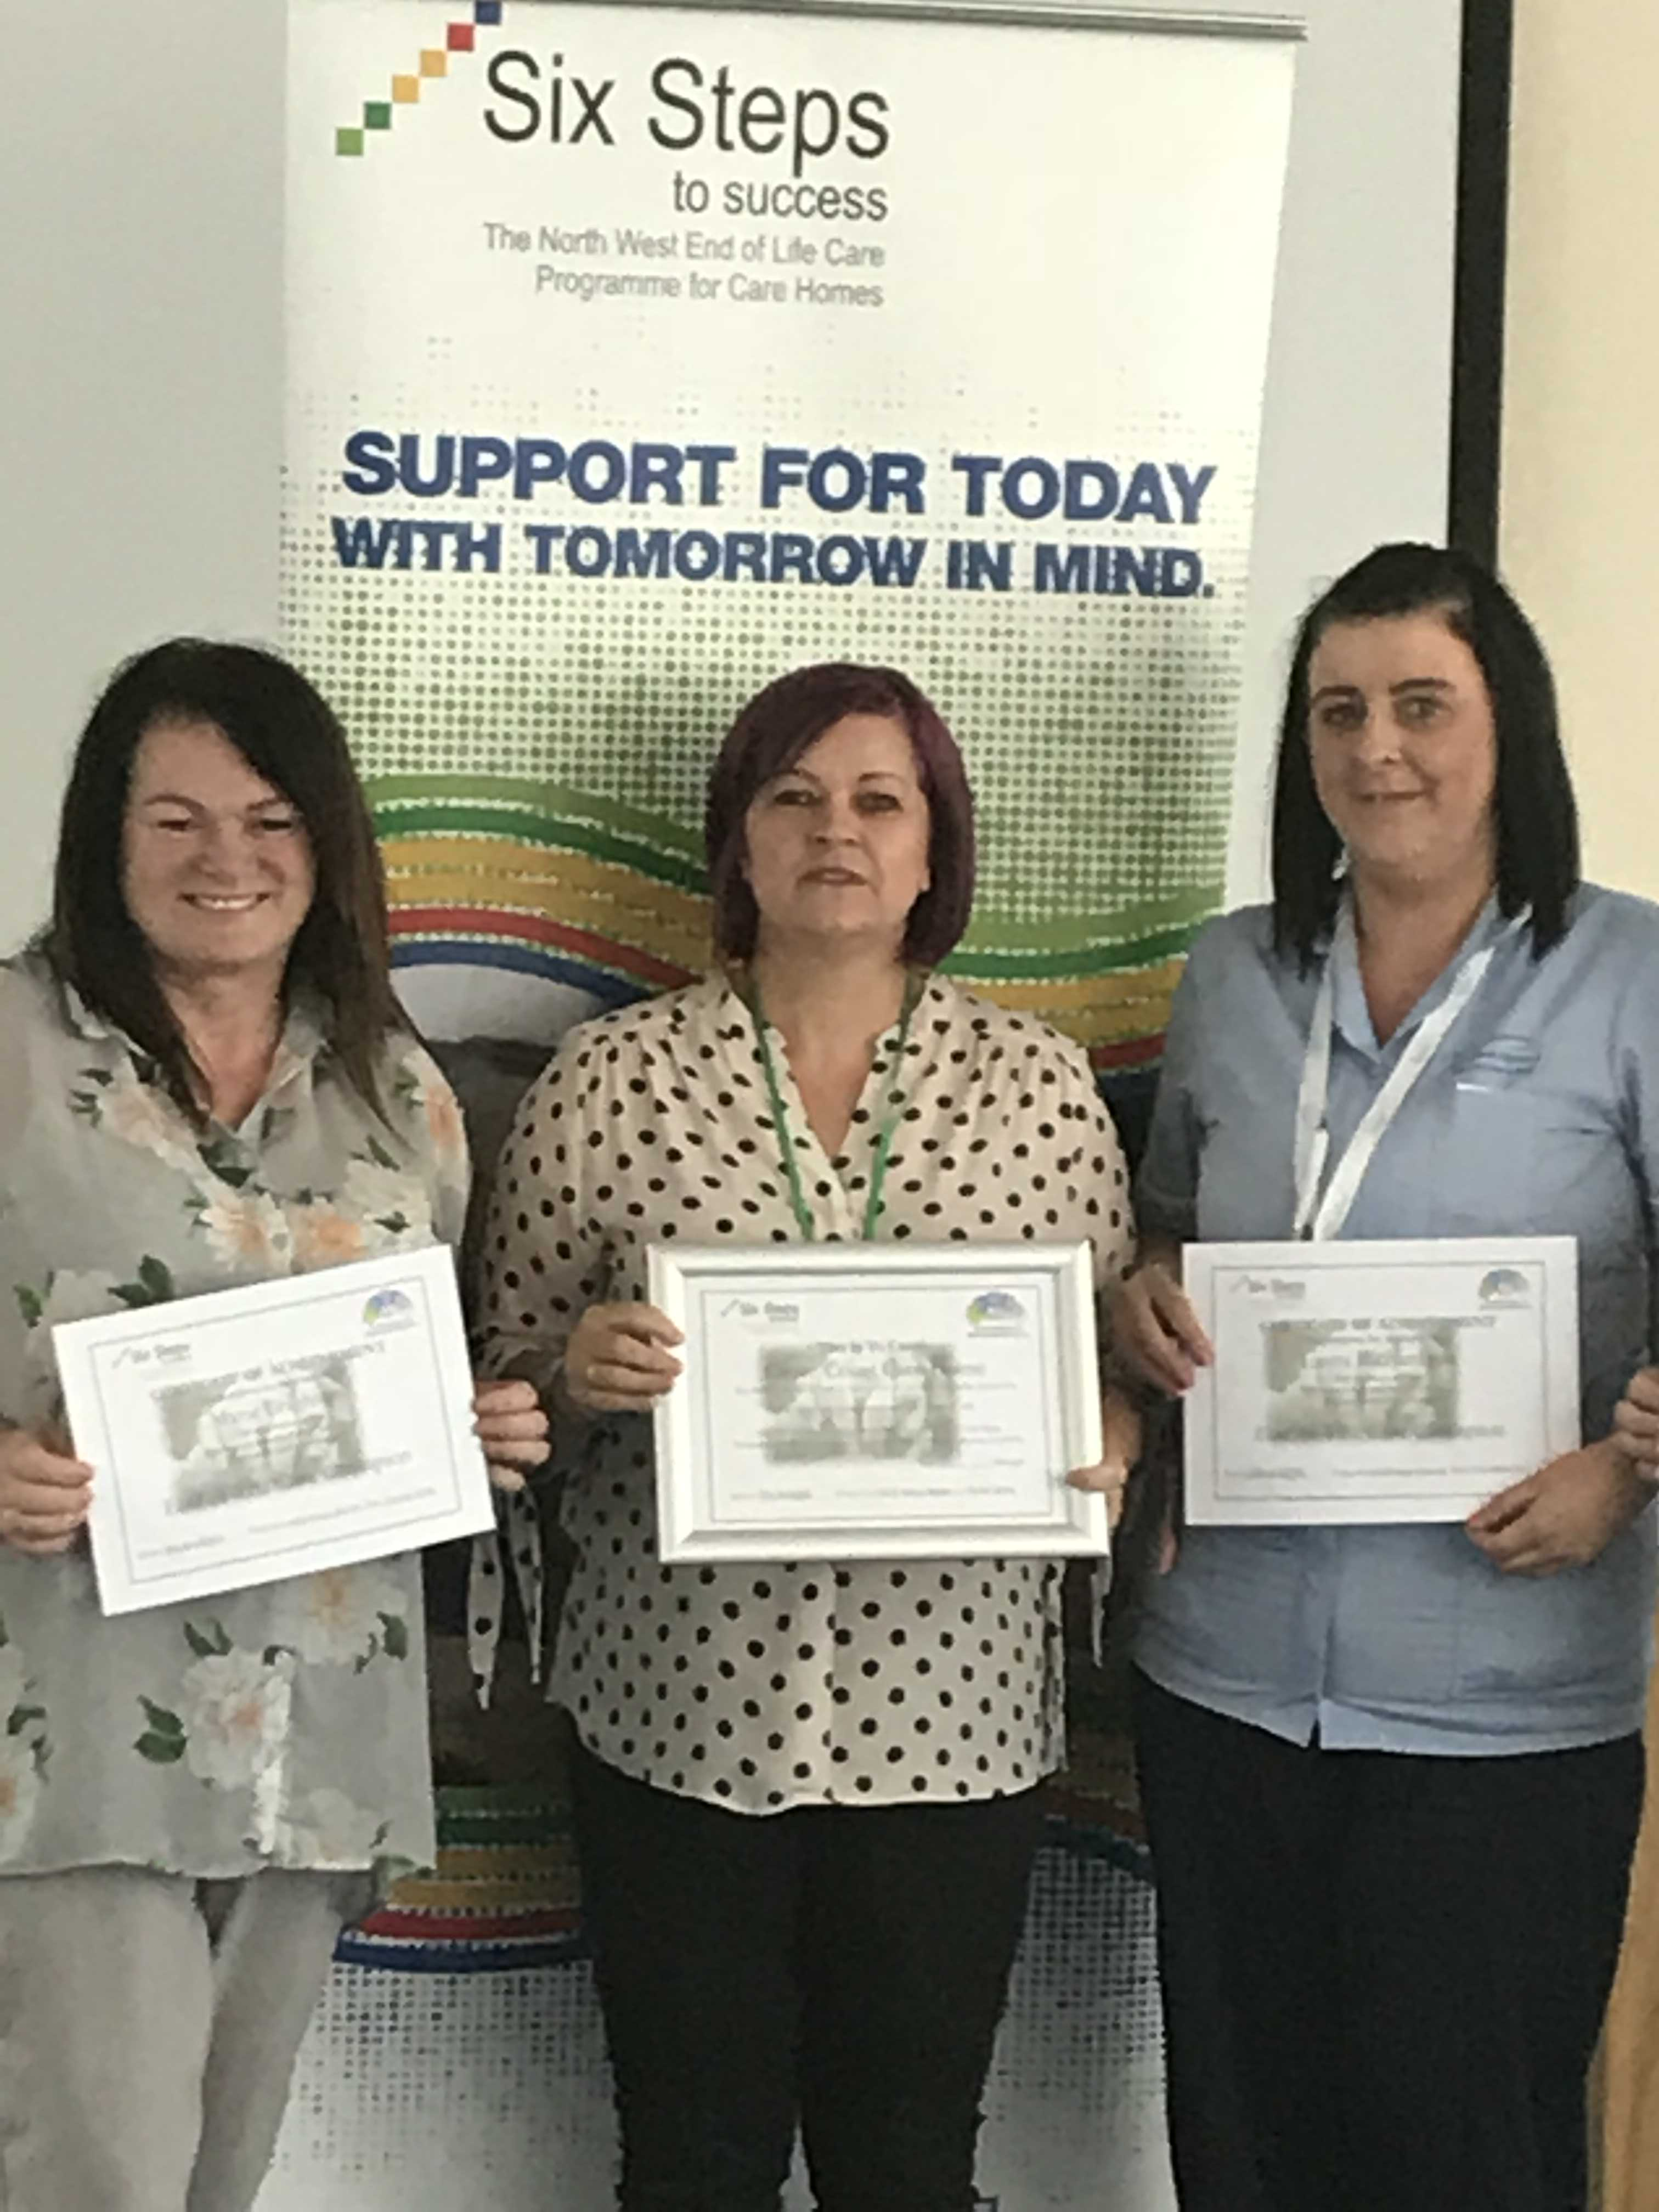 Six Steps 2018 success for Grace Court Care Centre Staff: Key Healthcare is dedicated to caring for elderly residents in safe. We have multiple dementia care homes including our care home middlesbrough, our care home St. Helen and care home saltburn. We excel in monitoring and improving care levels.